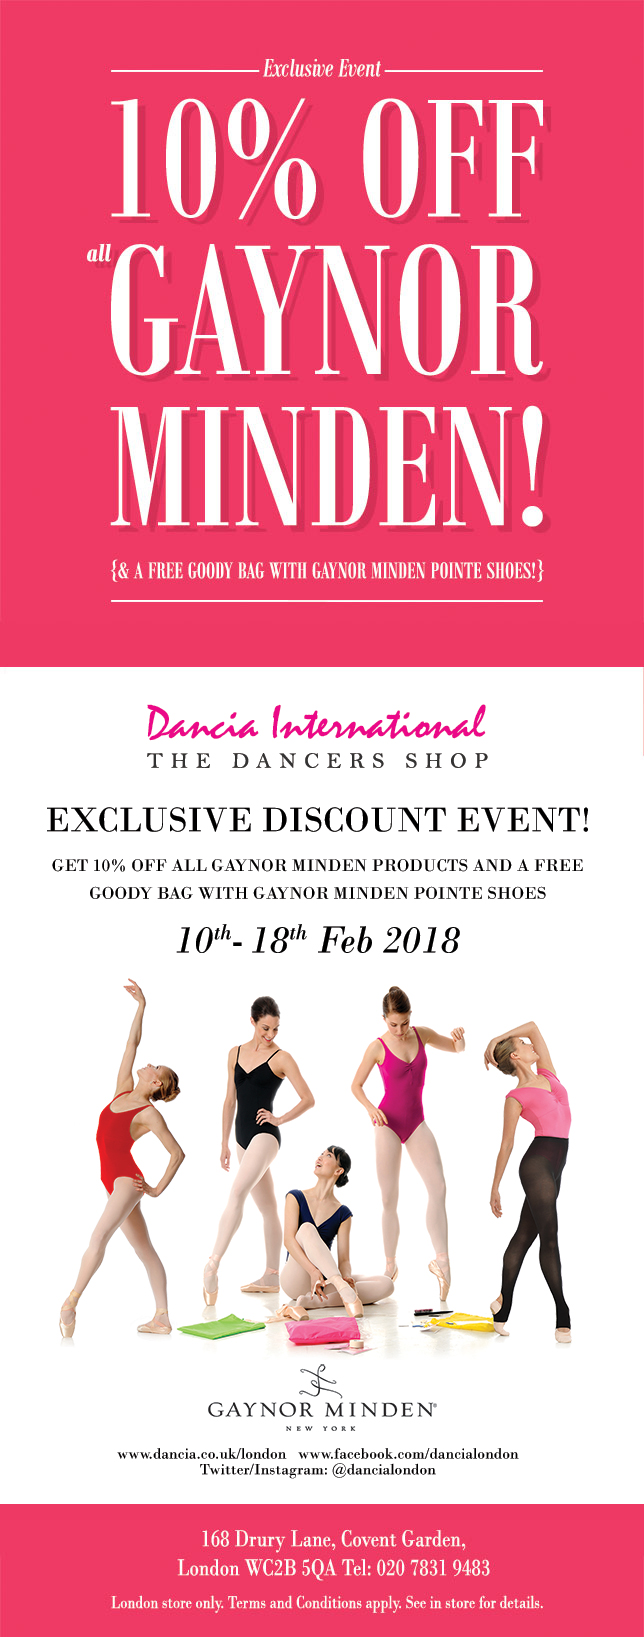 Excusive Dancia event! 10% off all Gaynor Minden! (And a free goody bag with every pair of Gaynor Minden Pointe shoes!) This February half-term:  10th – 18th February 2018. Only at: Dancia London, 168 Drury Lane, London WC2B 5QA. Tel: 0207 831 9483. London store only. Terms and conditions apply. See in store for details.